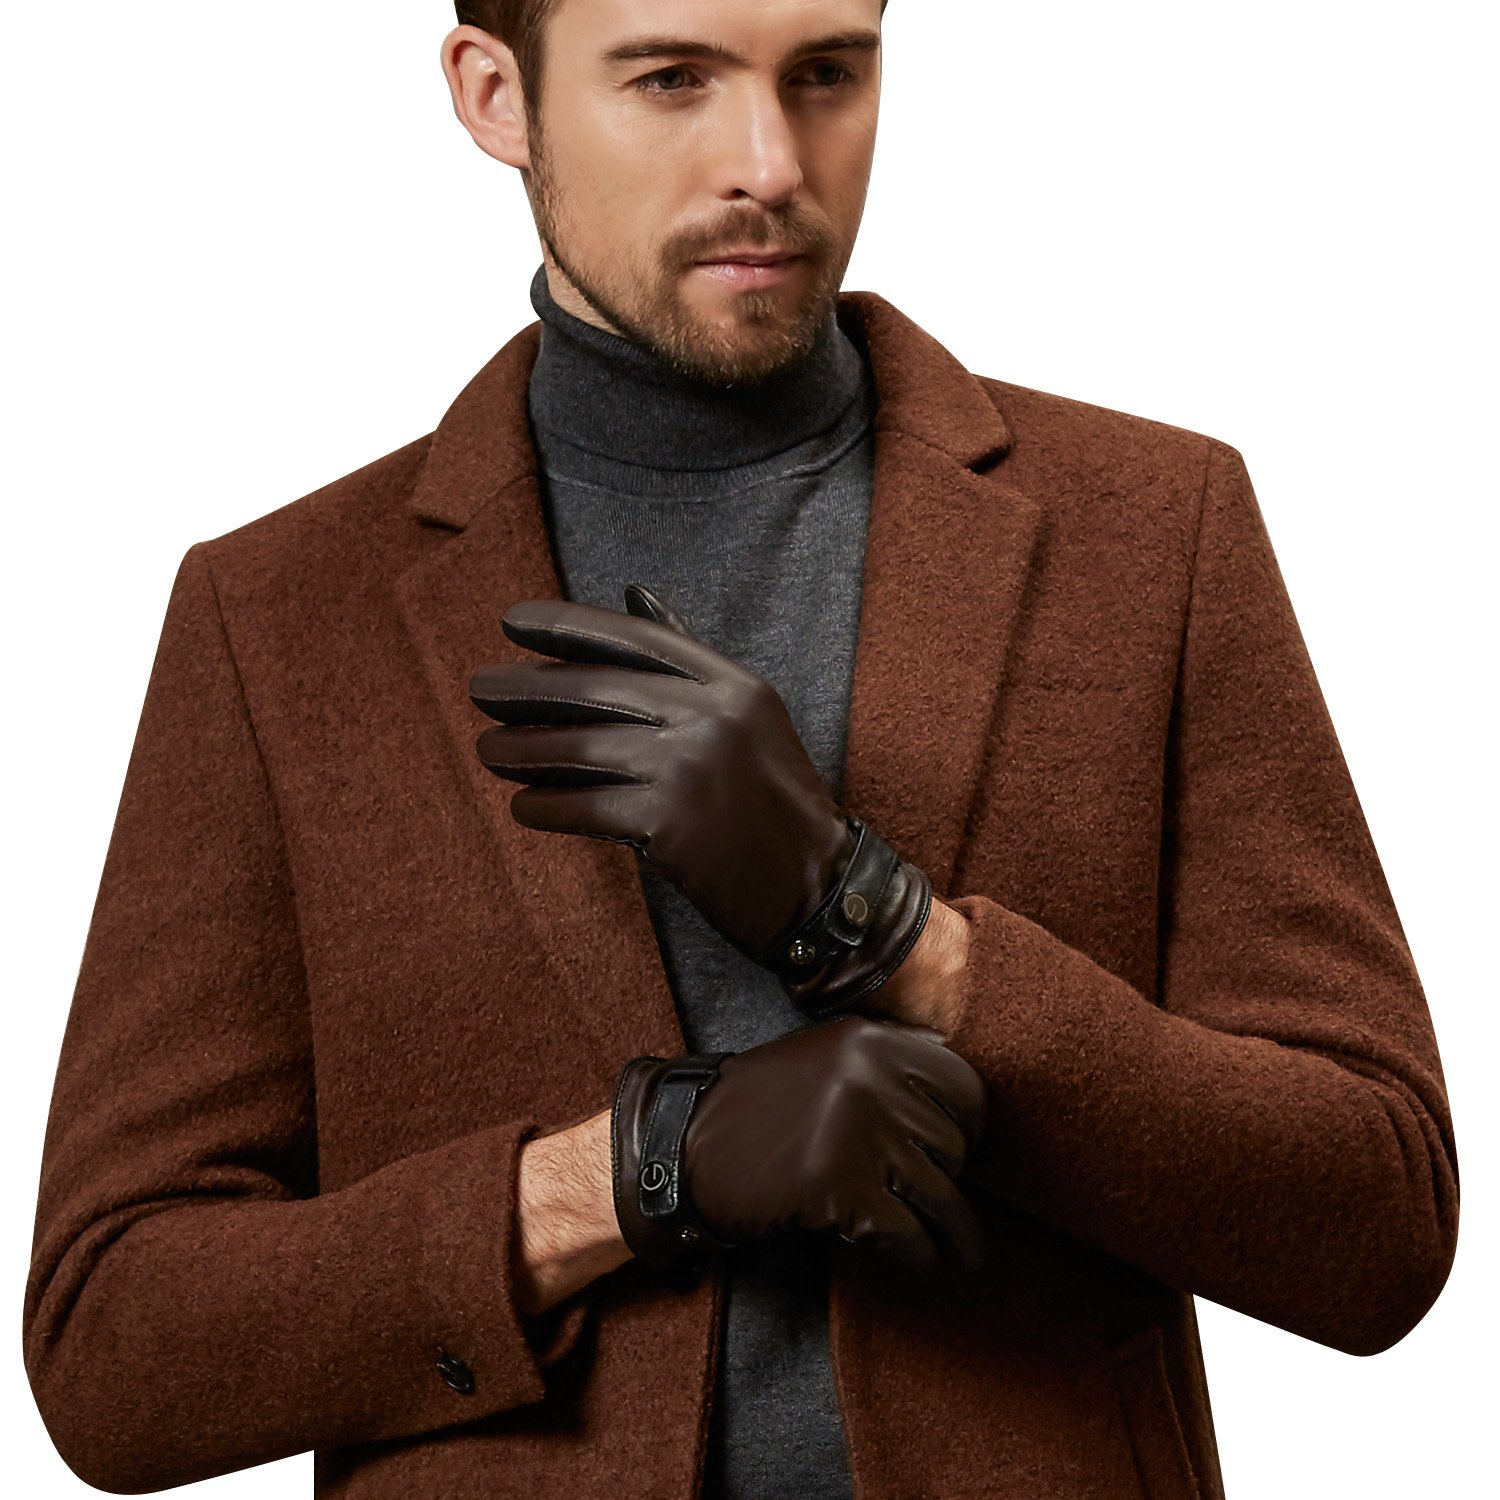 GSG Gifts for Men Premium Italian Winter Warm Motorcycle Gloves Men's Driving Gloves Colorblock Nappa Leather Faux Fur Liner 9